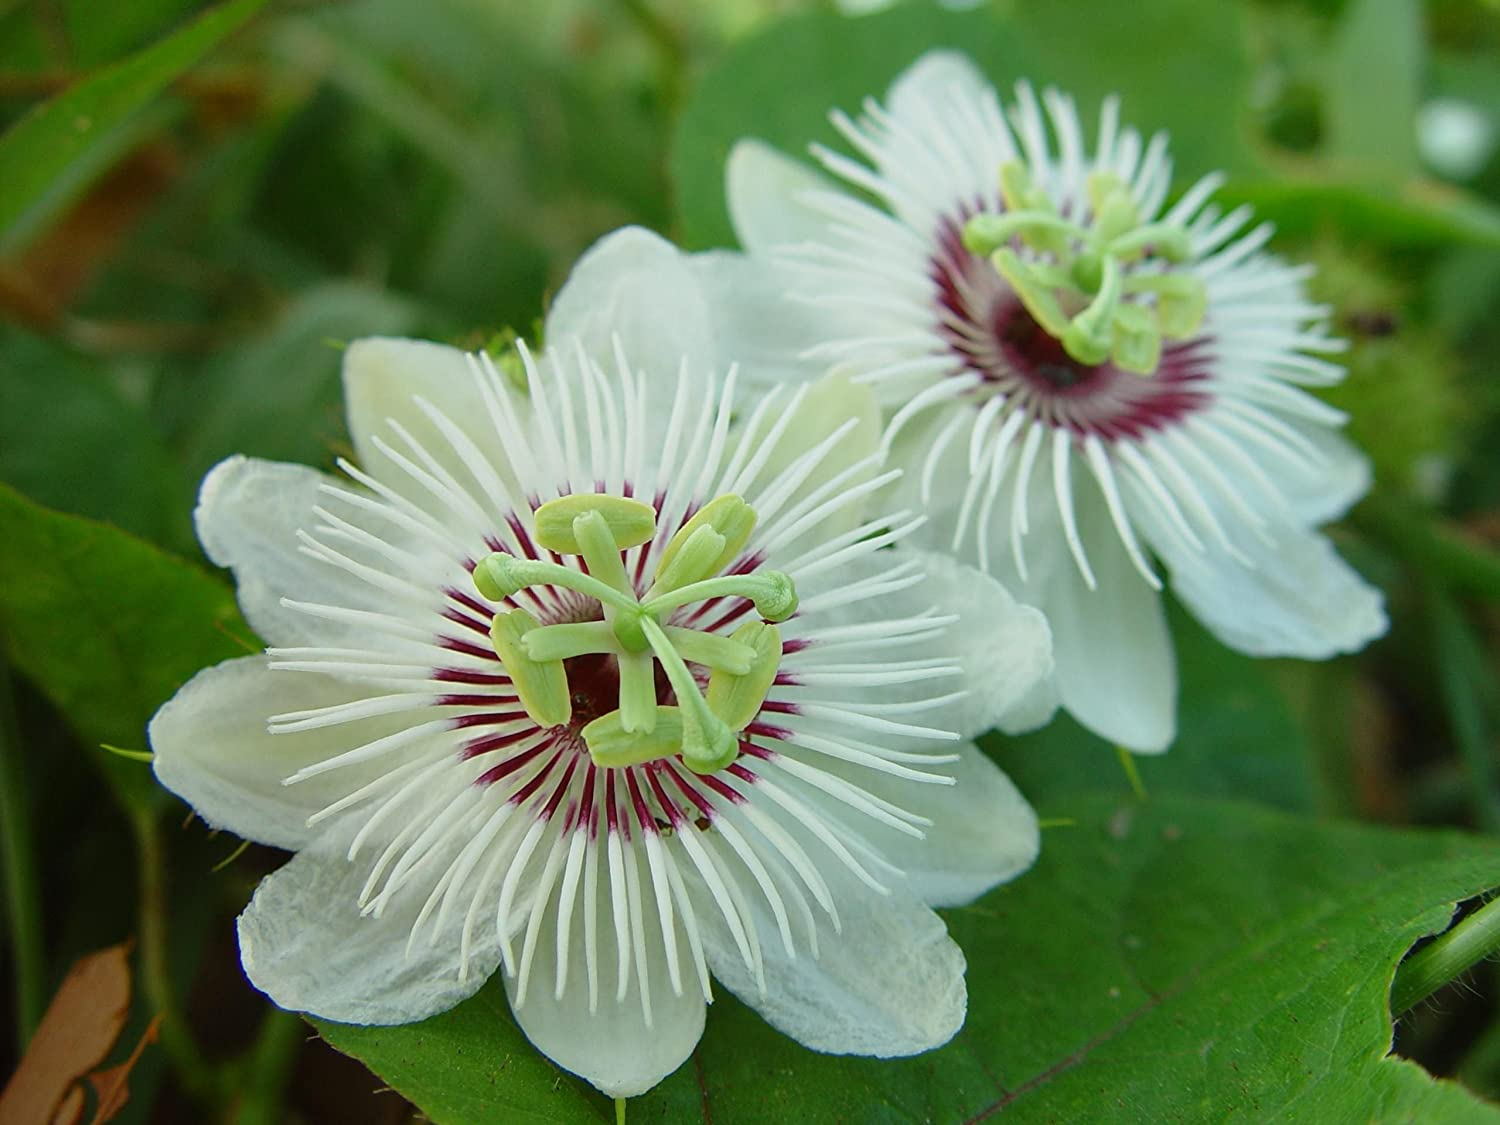 Asklepios-seeds® - 15 seeds of Passiflora foetida, wild maracuja, bush passion fruit, marya-marya, wild water lemon, stinking passionflower, love-in-a-mist, running pop